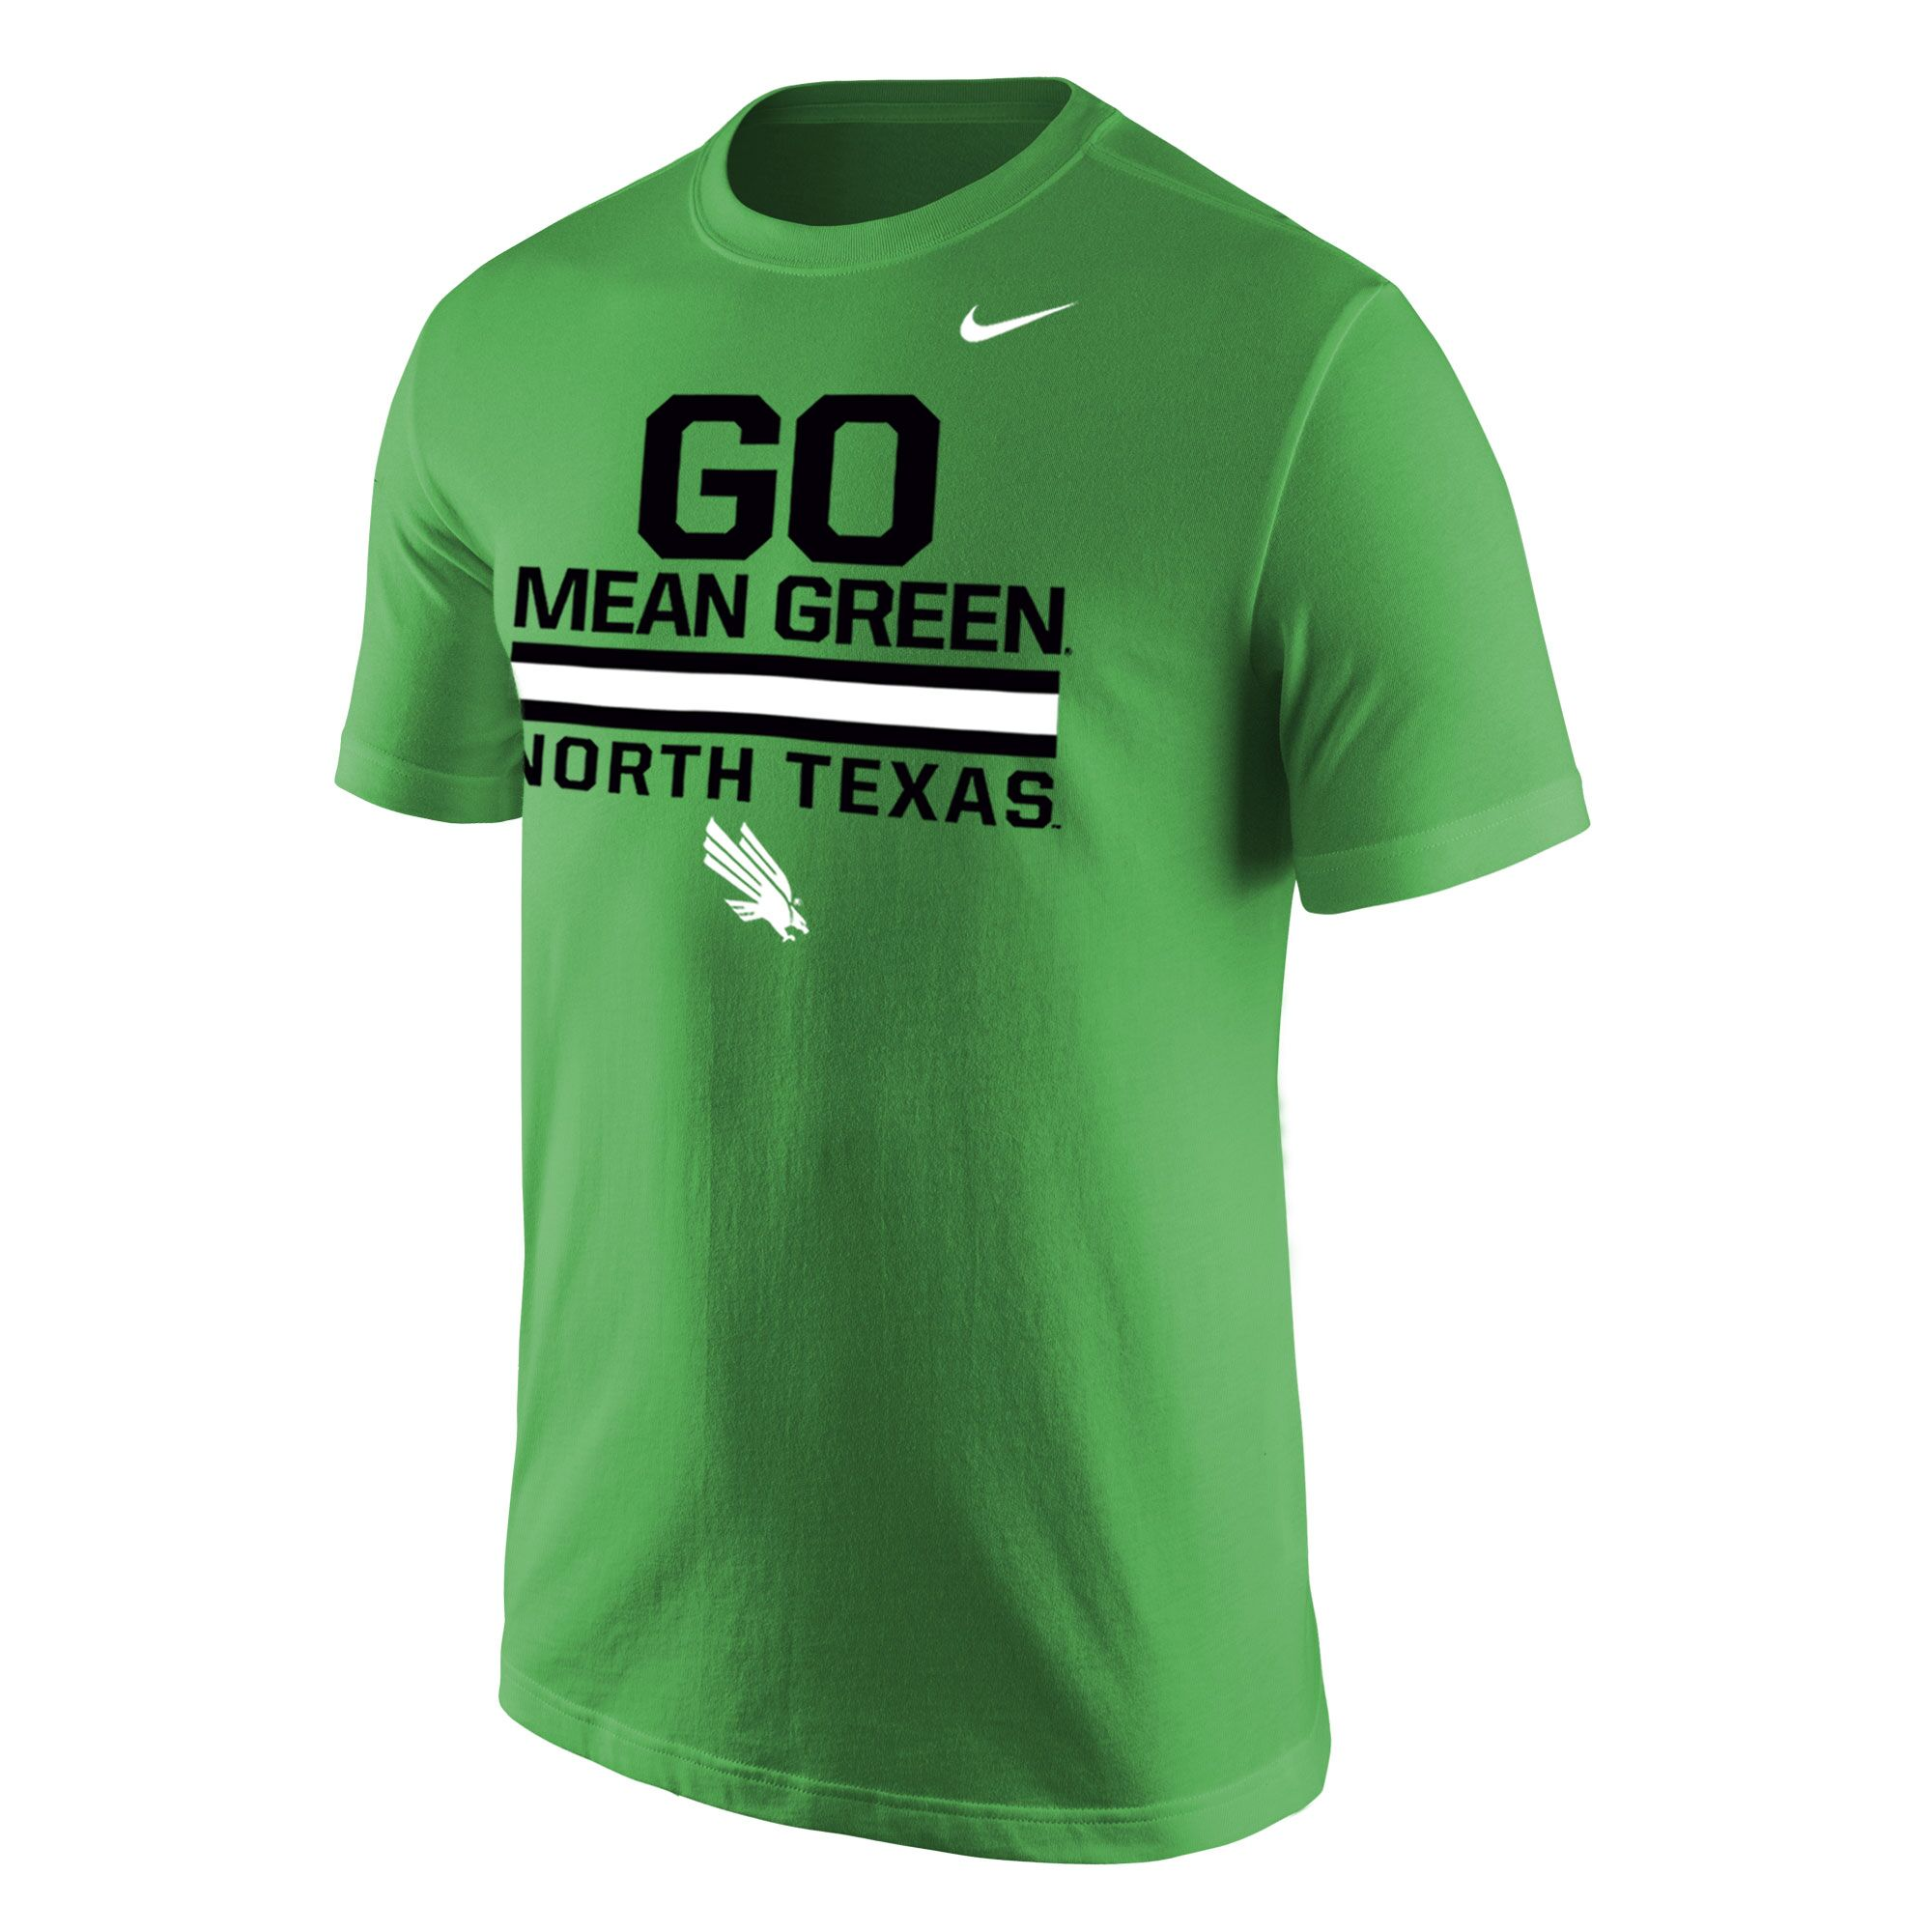 GO MEAN GREEN TEE